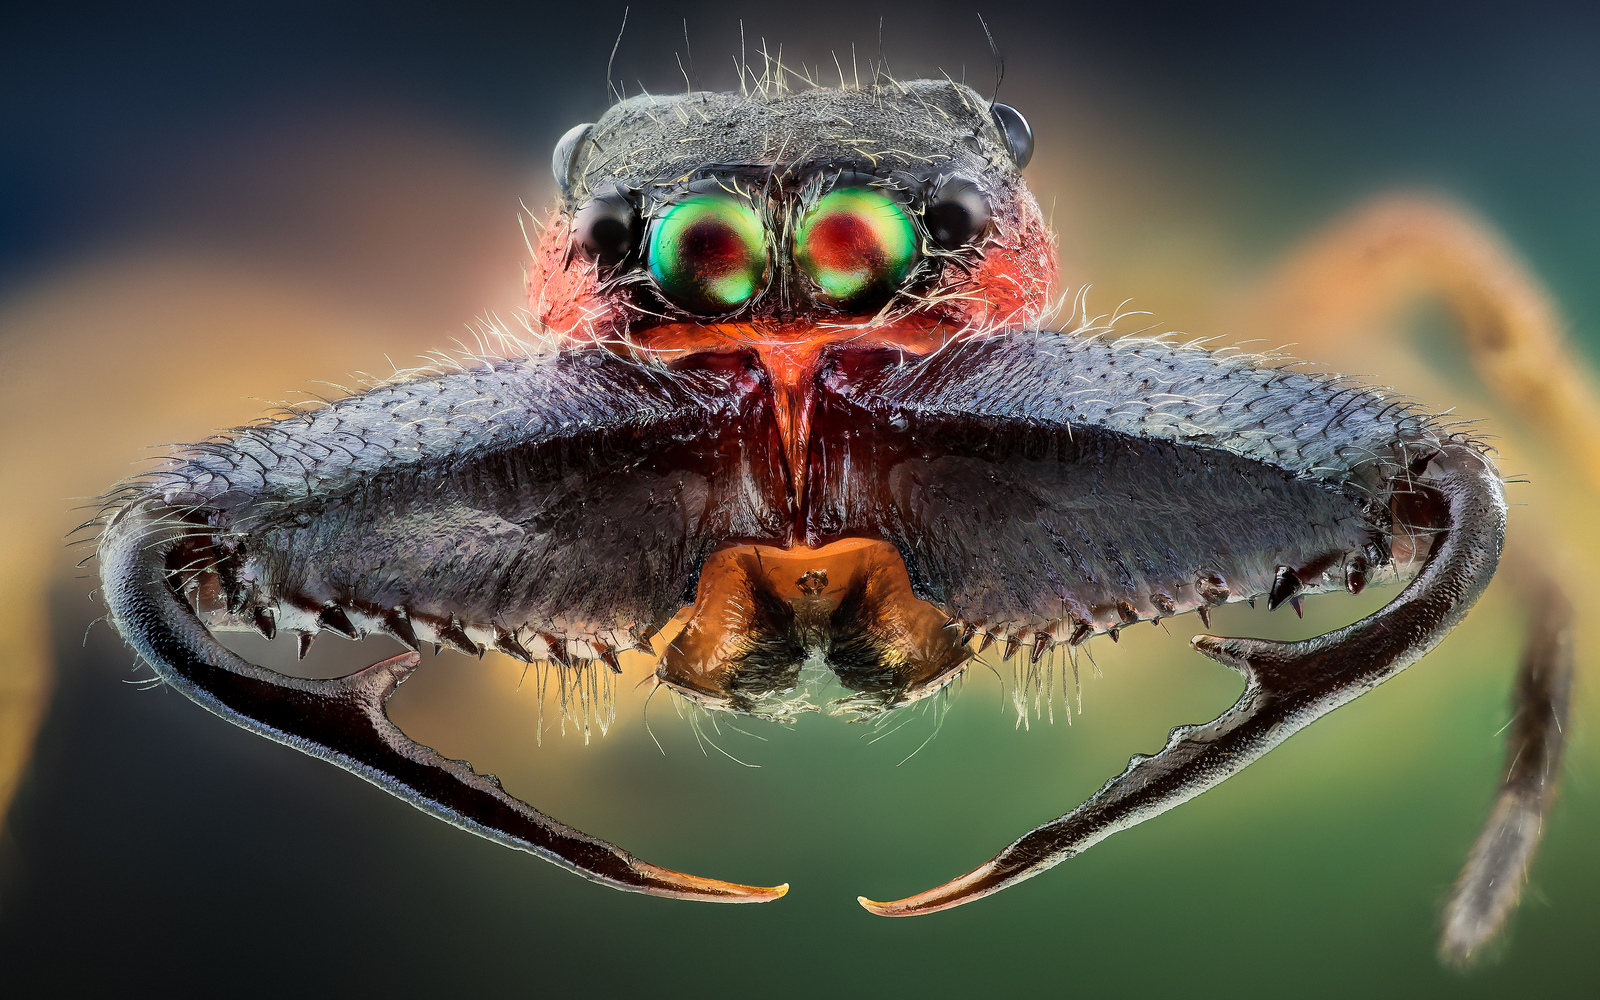 Macro Insect Woahdude